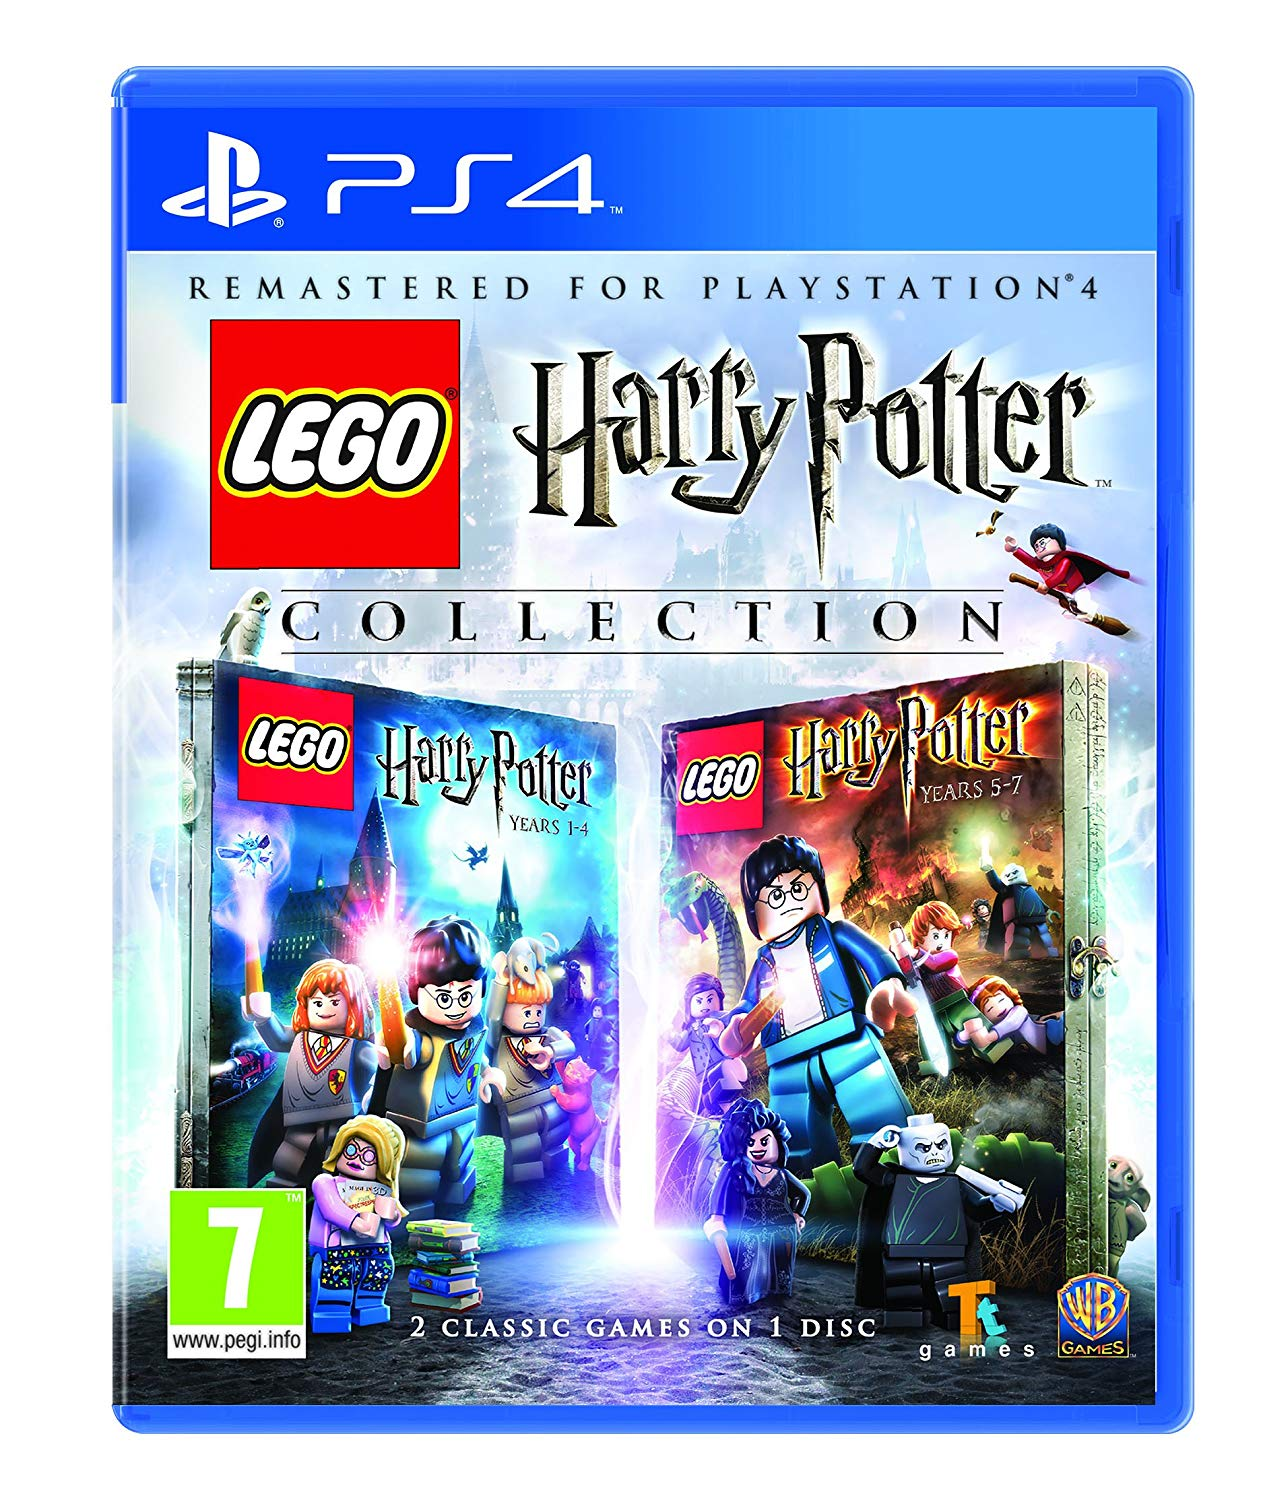 Lego Harry Potter Collection PS4, PS4, DVDMEGASTORE, DVDMEGASTORE